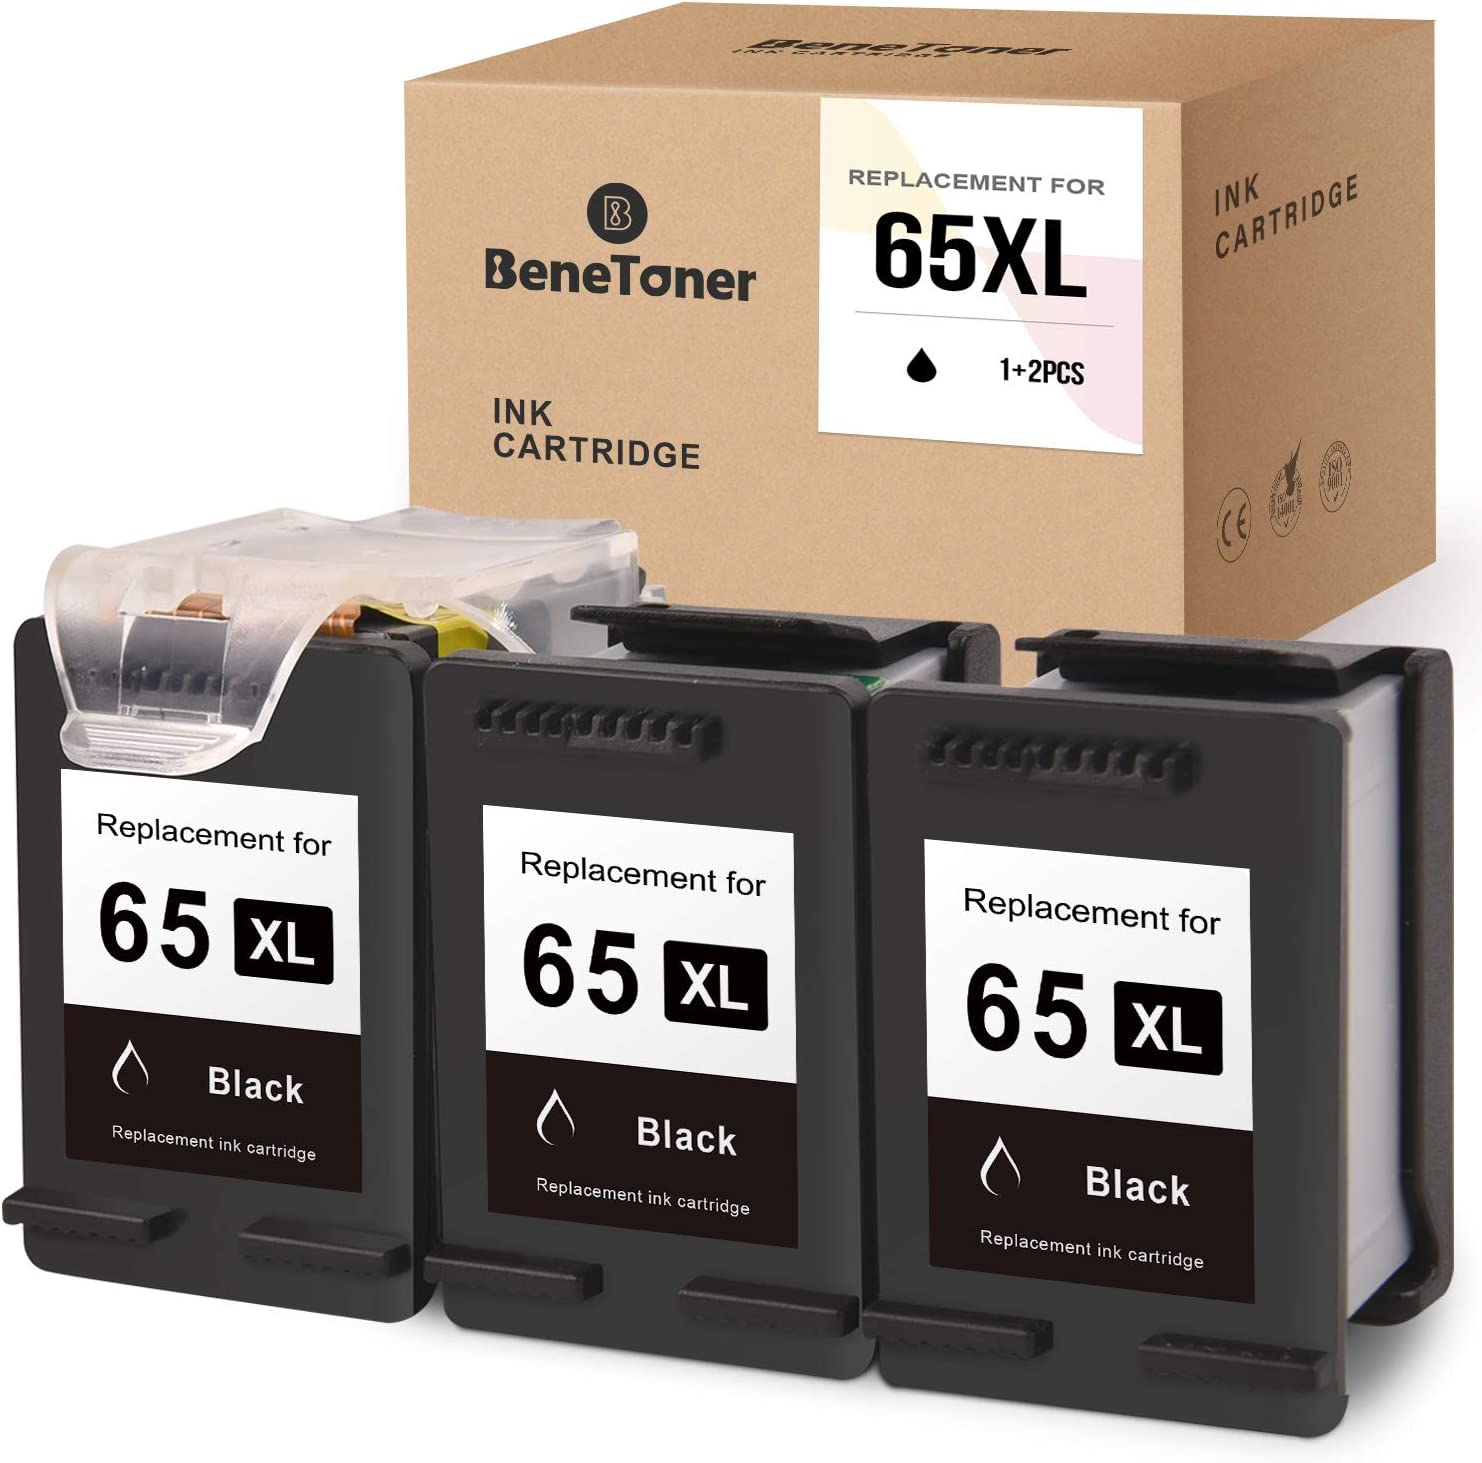 BENETONER Remanufactured Ink Cartridge Replacement for HP 65 65XL Work with Envy 5055 5052 5058 DeskJet 3755 2655 3720 3722 3723 3730 3732 3752 3758 (Print Head+Cartridges, 3 Black)